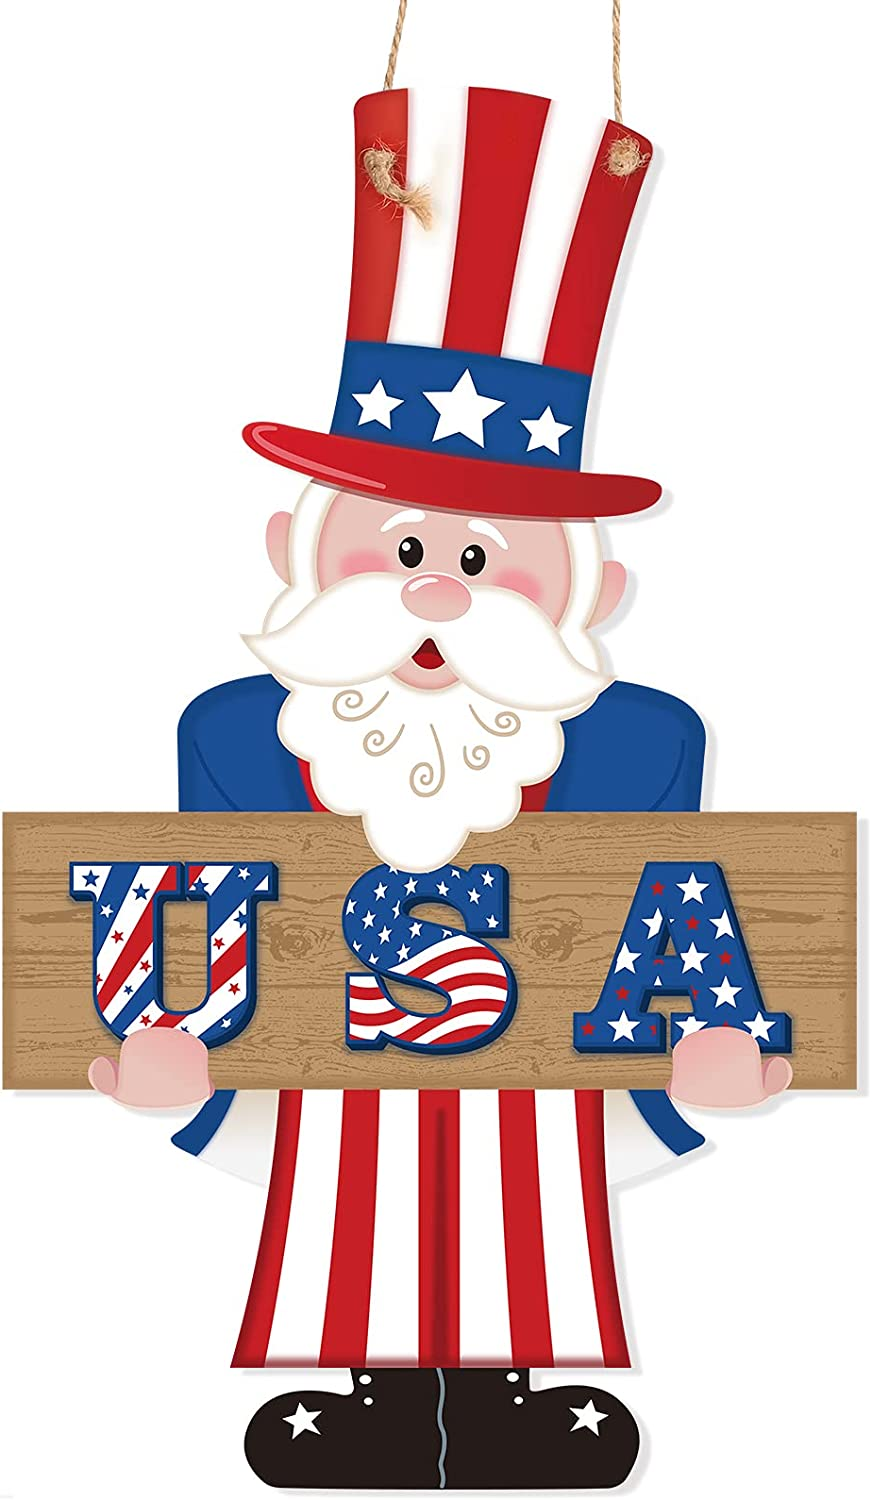 Jetec 4th of July Hanging Sign Uncle Sam USA Patriotic Wooden Door Sign Uncle Sam Memorial Day Wall Sign Yard Indoor Outdoor Garden Decoration with Rope, 13.6 x 8.3 Inch